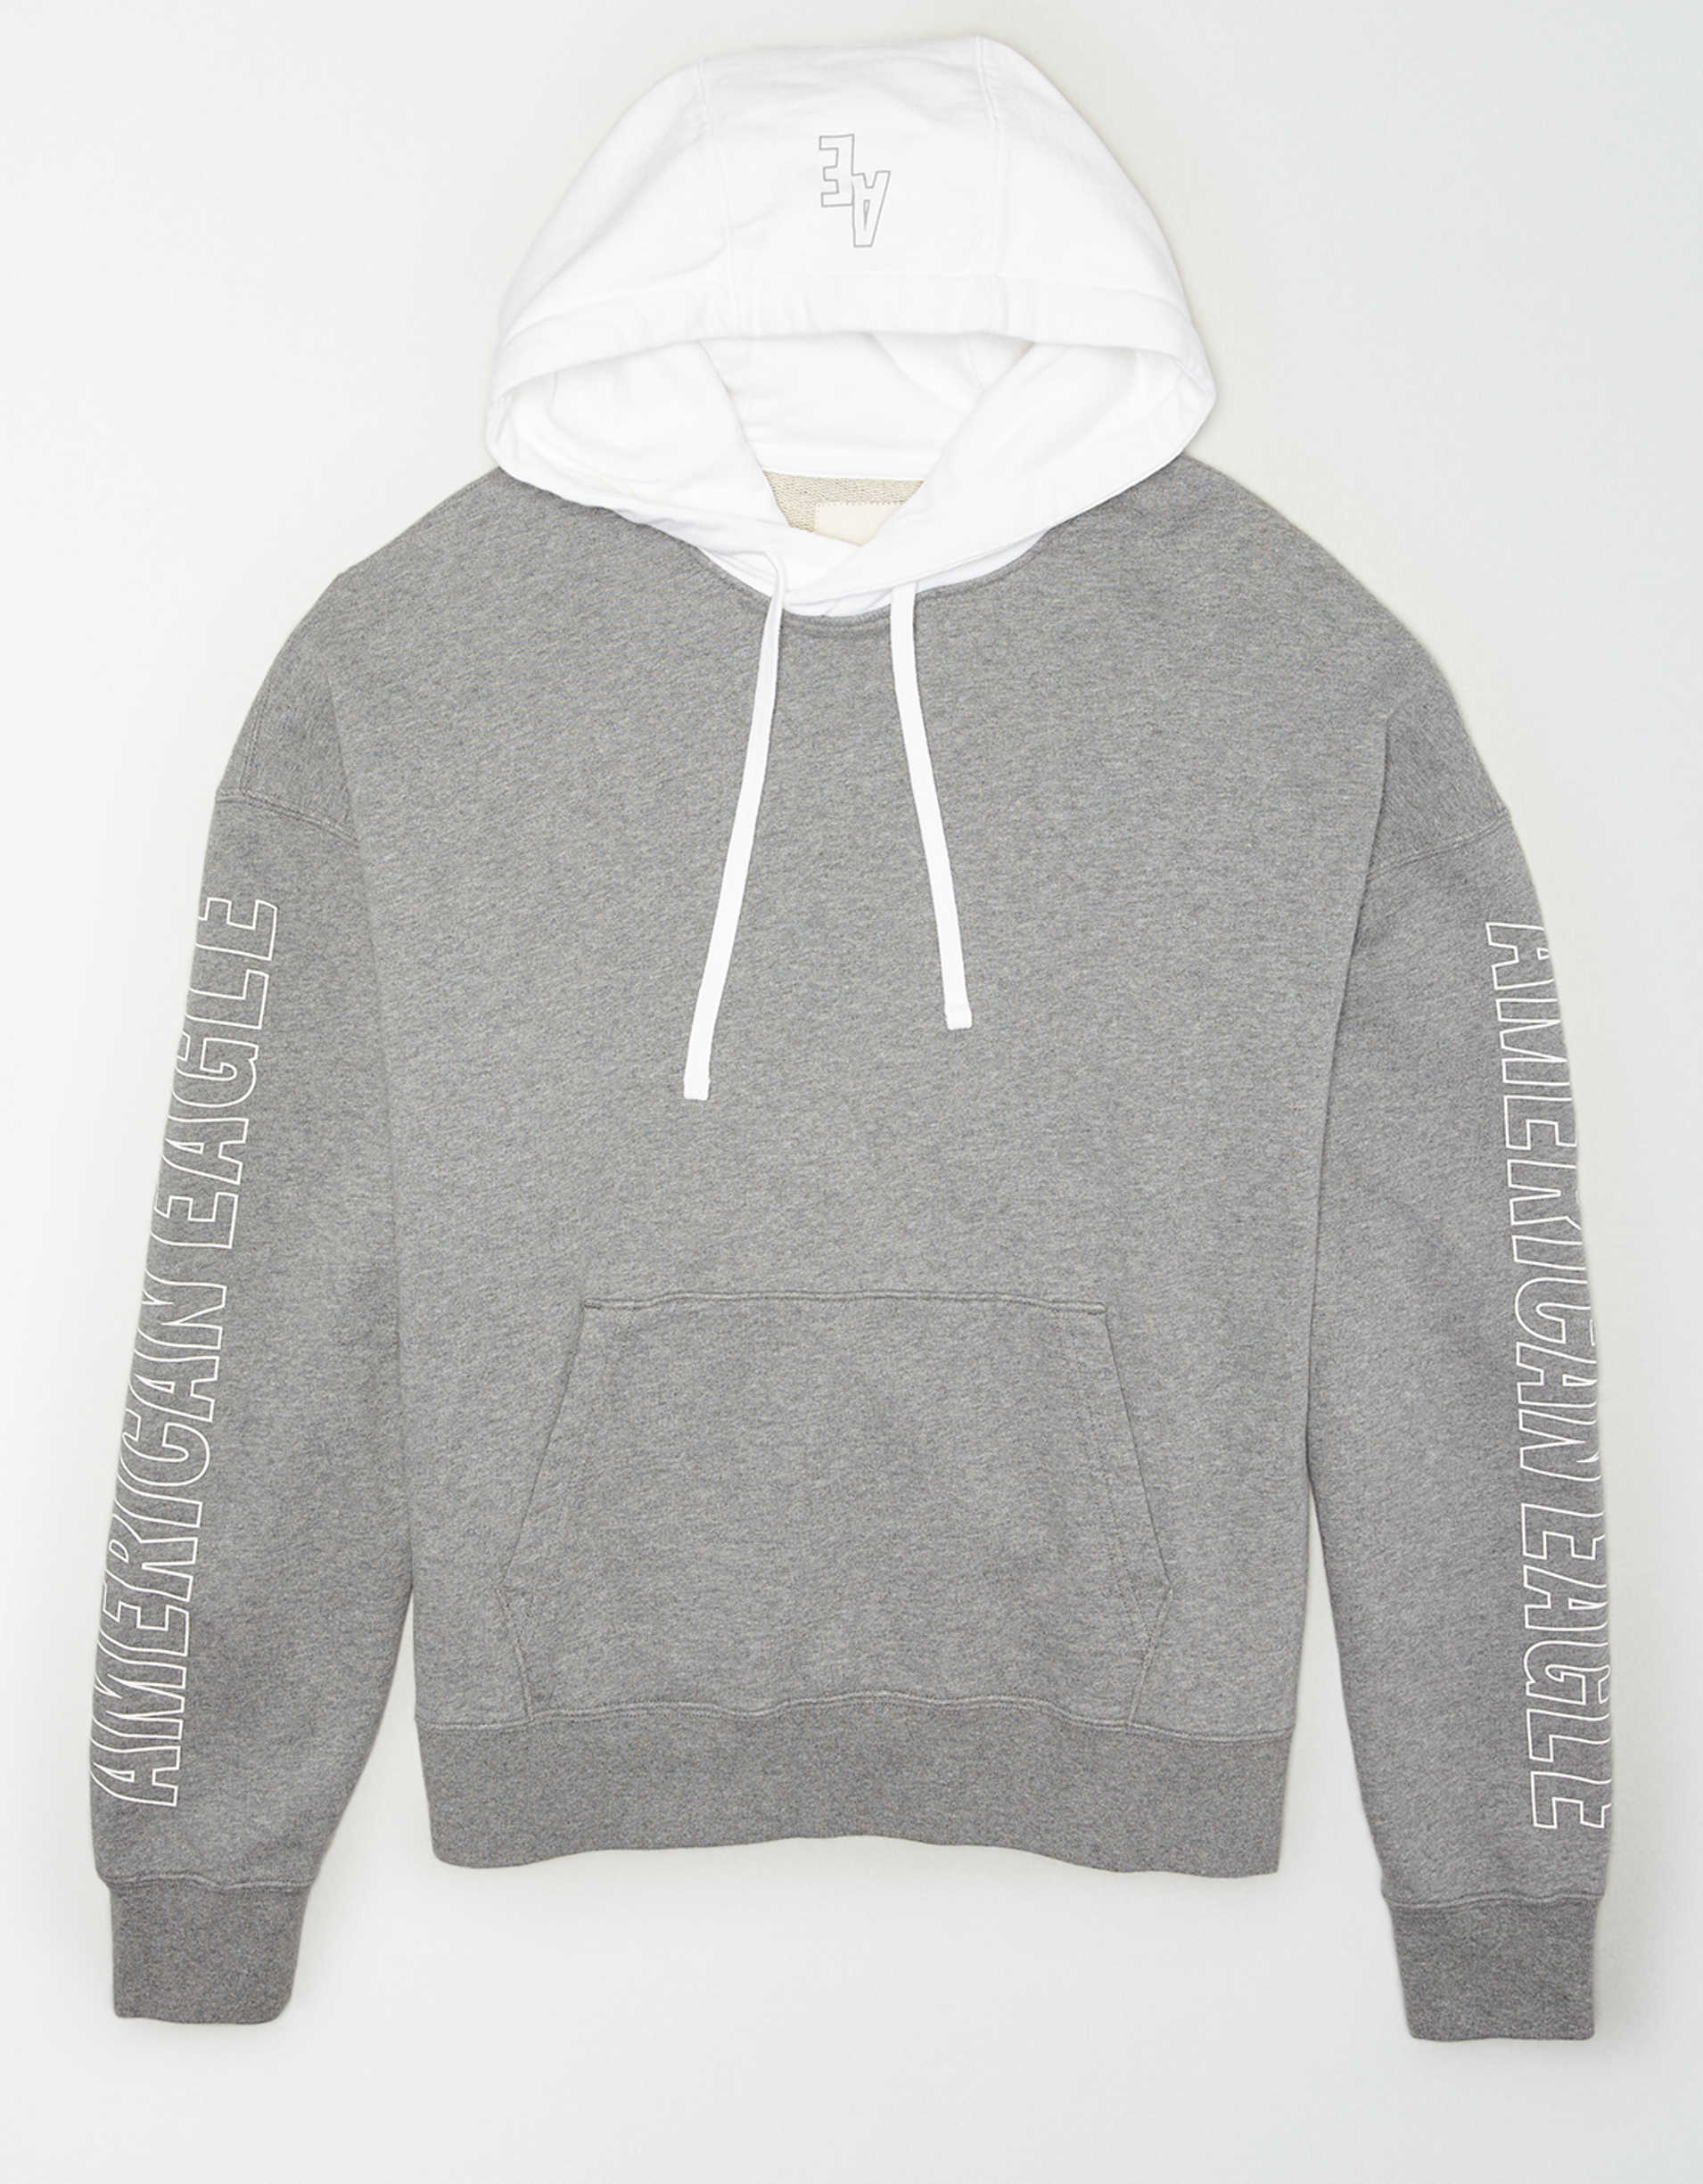 AE Drop-Shoulder Graphic Pullover Hoodie